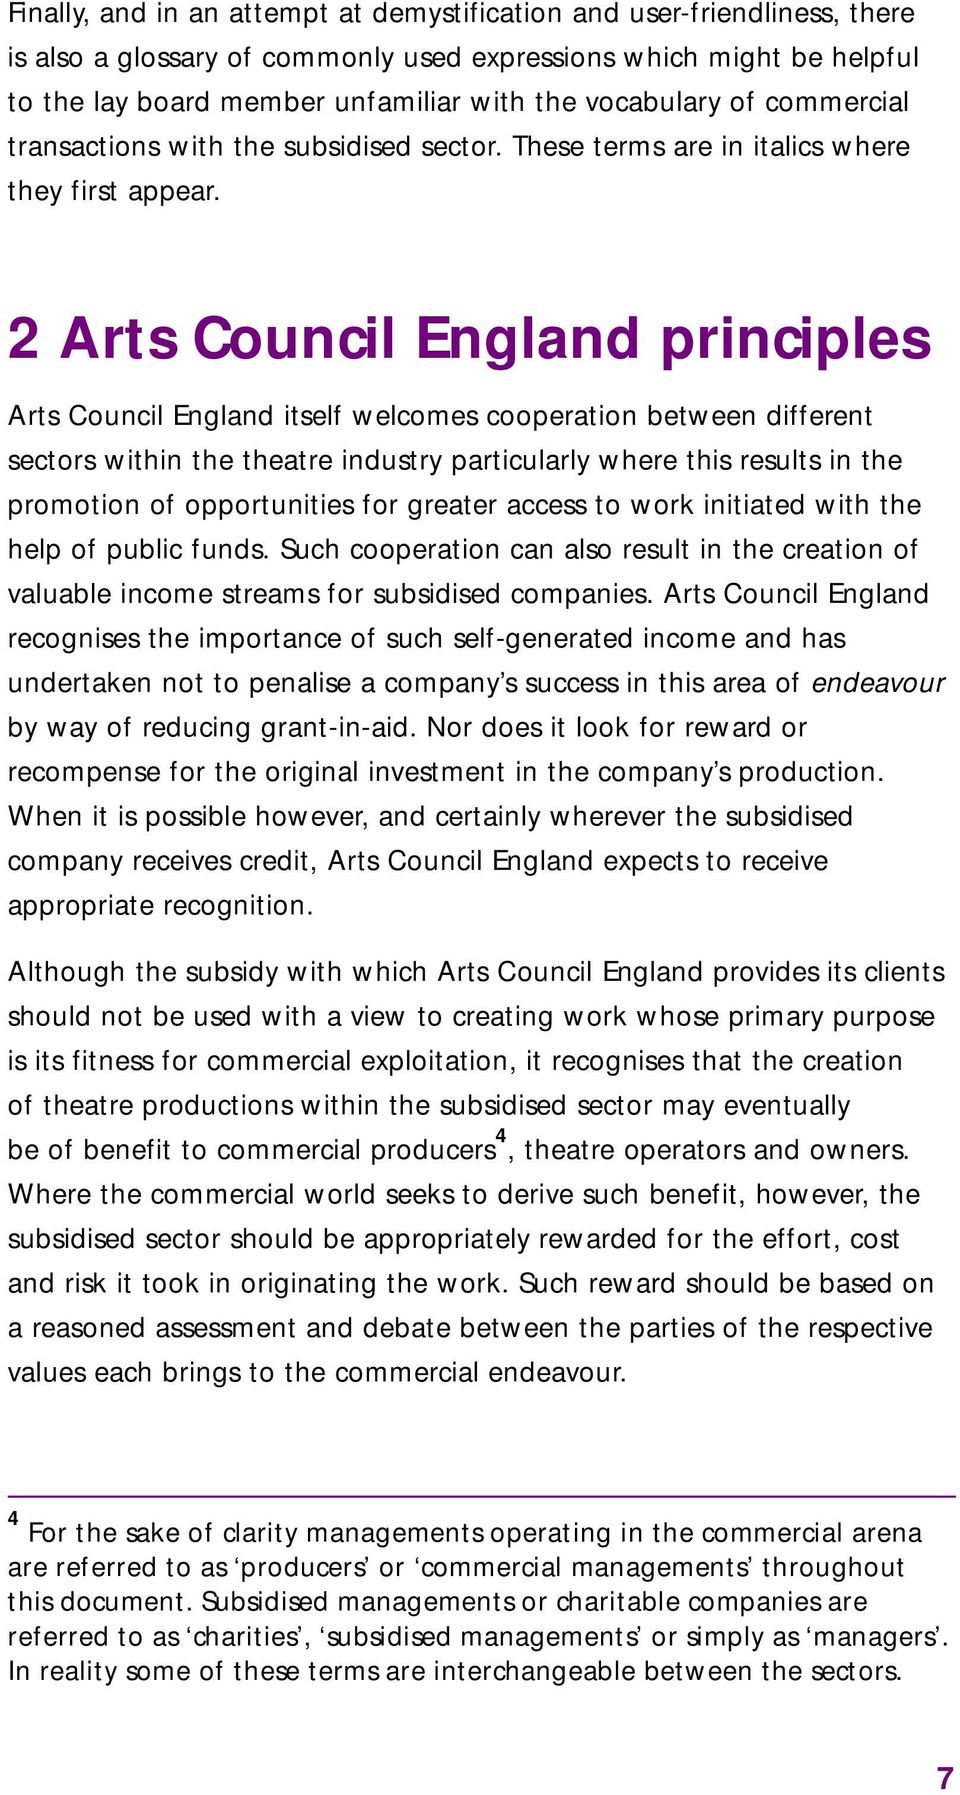 2 Arts Council England principles Arts Council England itself welcomes cooperation between different sectors within the theatre industry particularly where this results in the promotion of